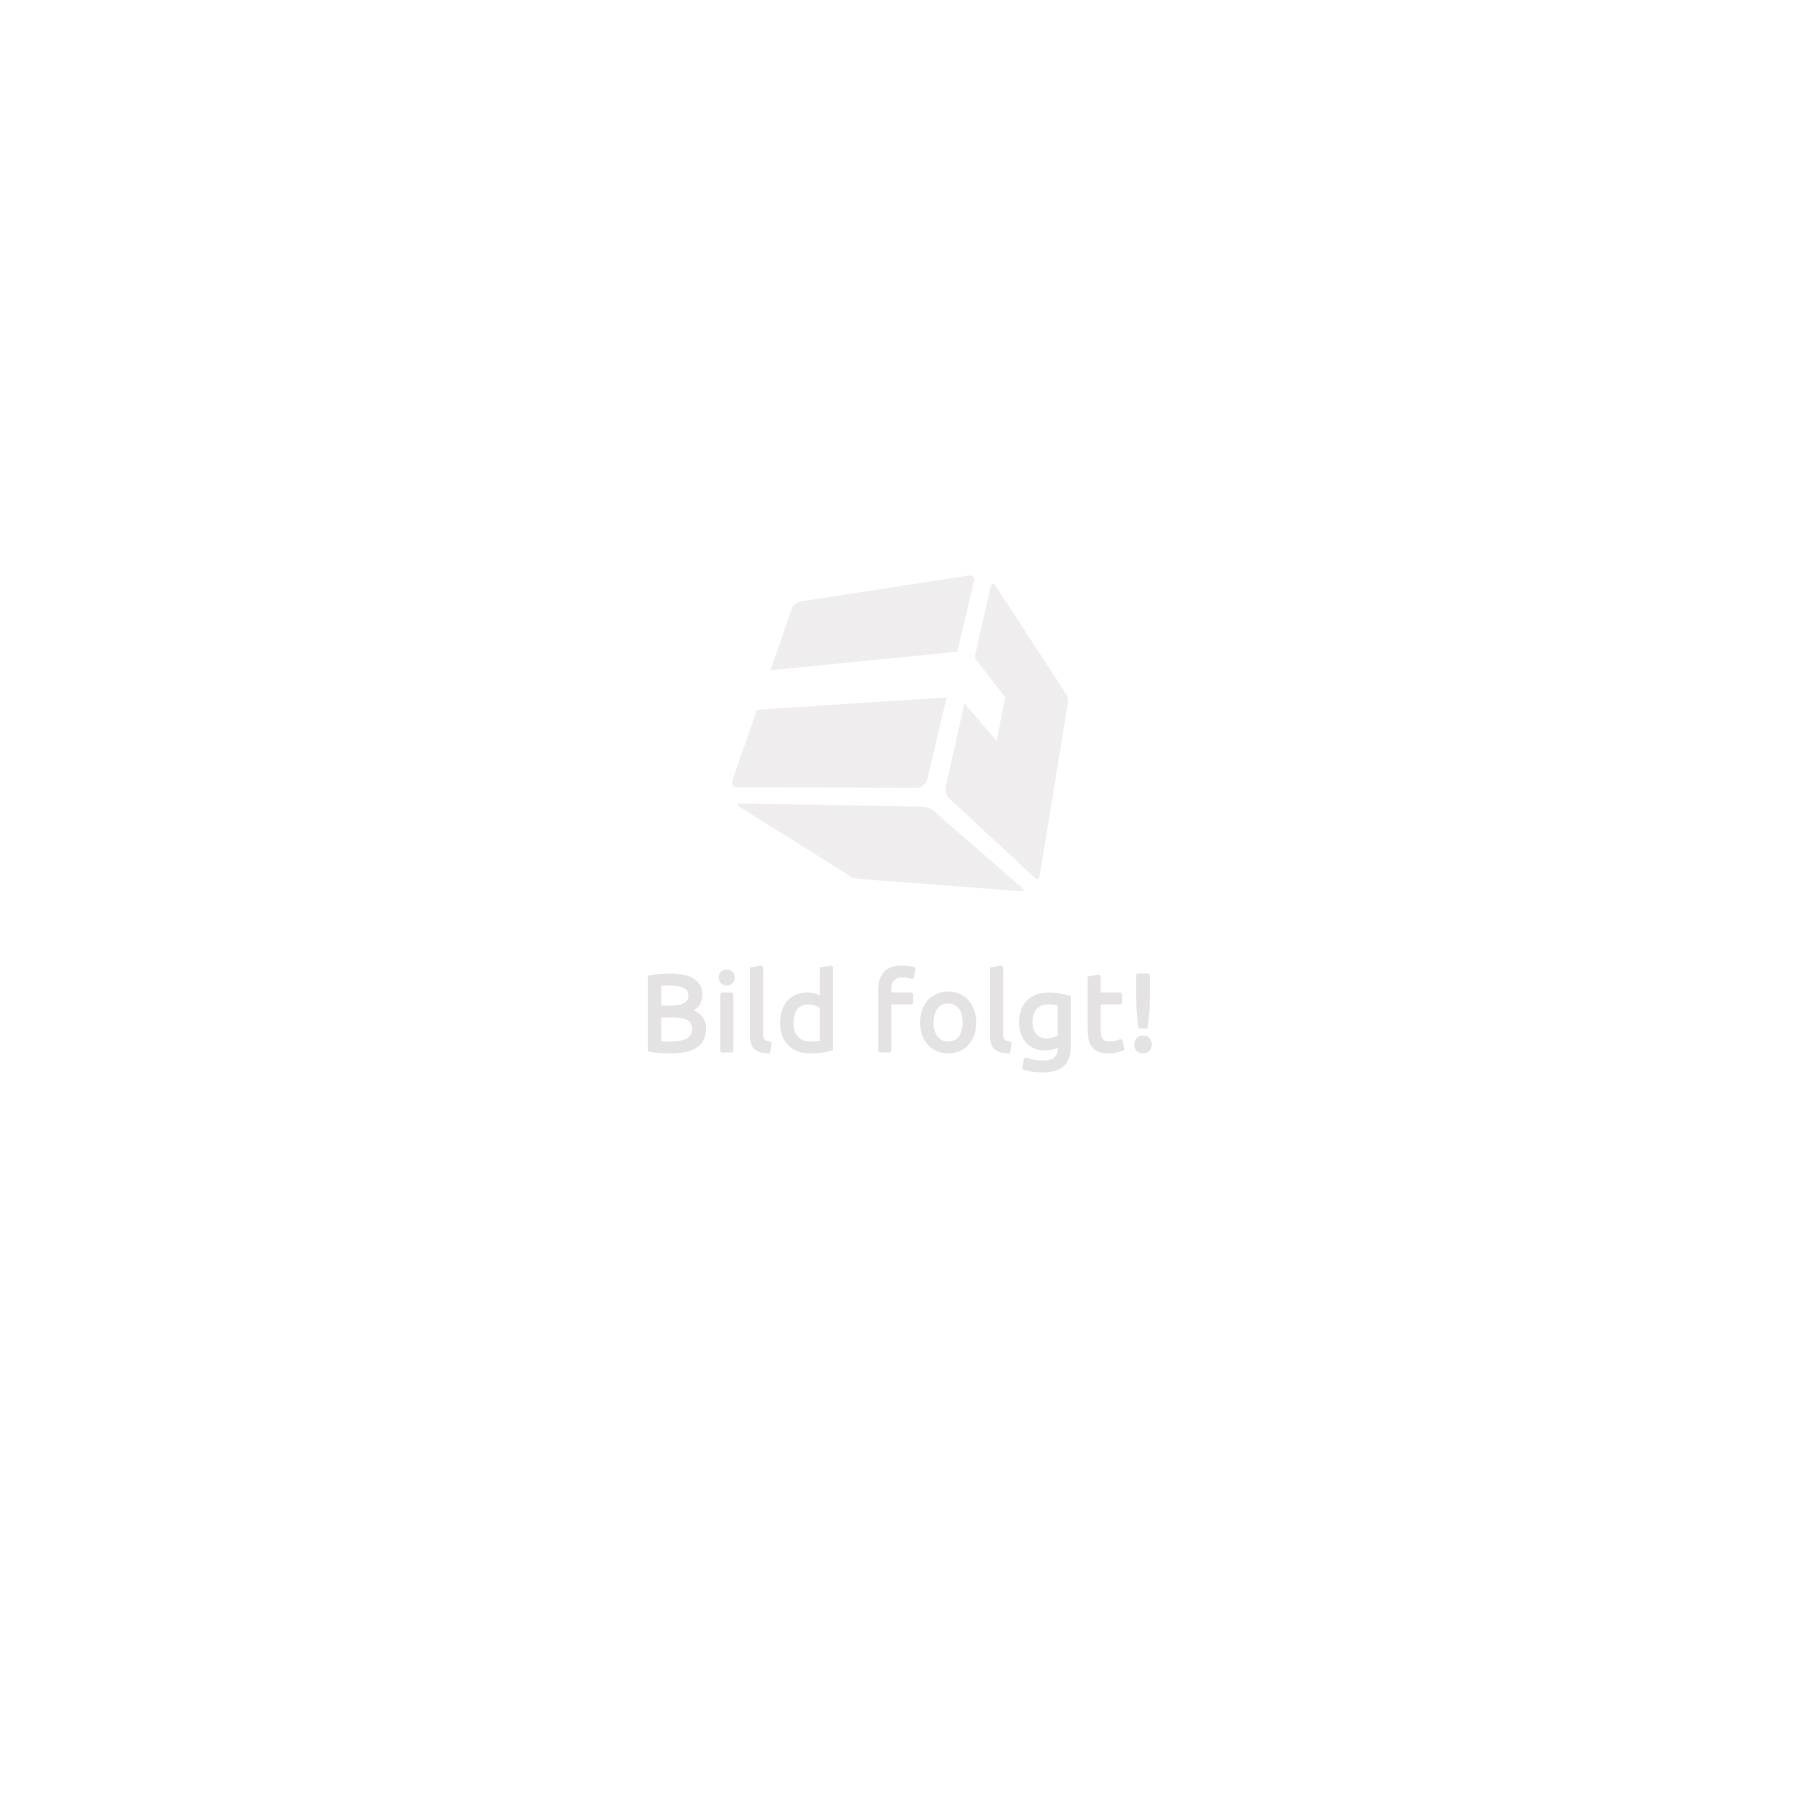 Table de massage 3 Zones Pliante 10 cm d'épaisseur